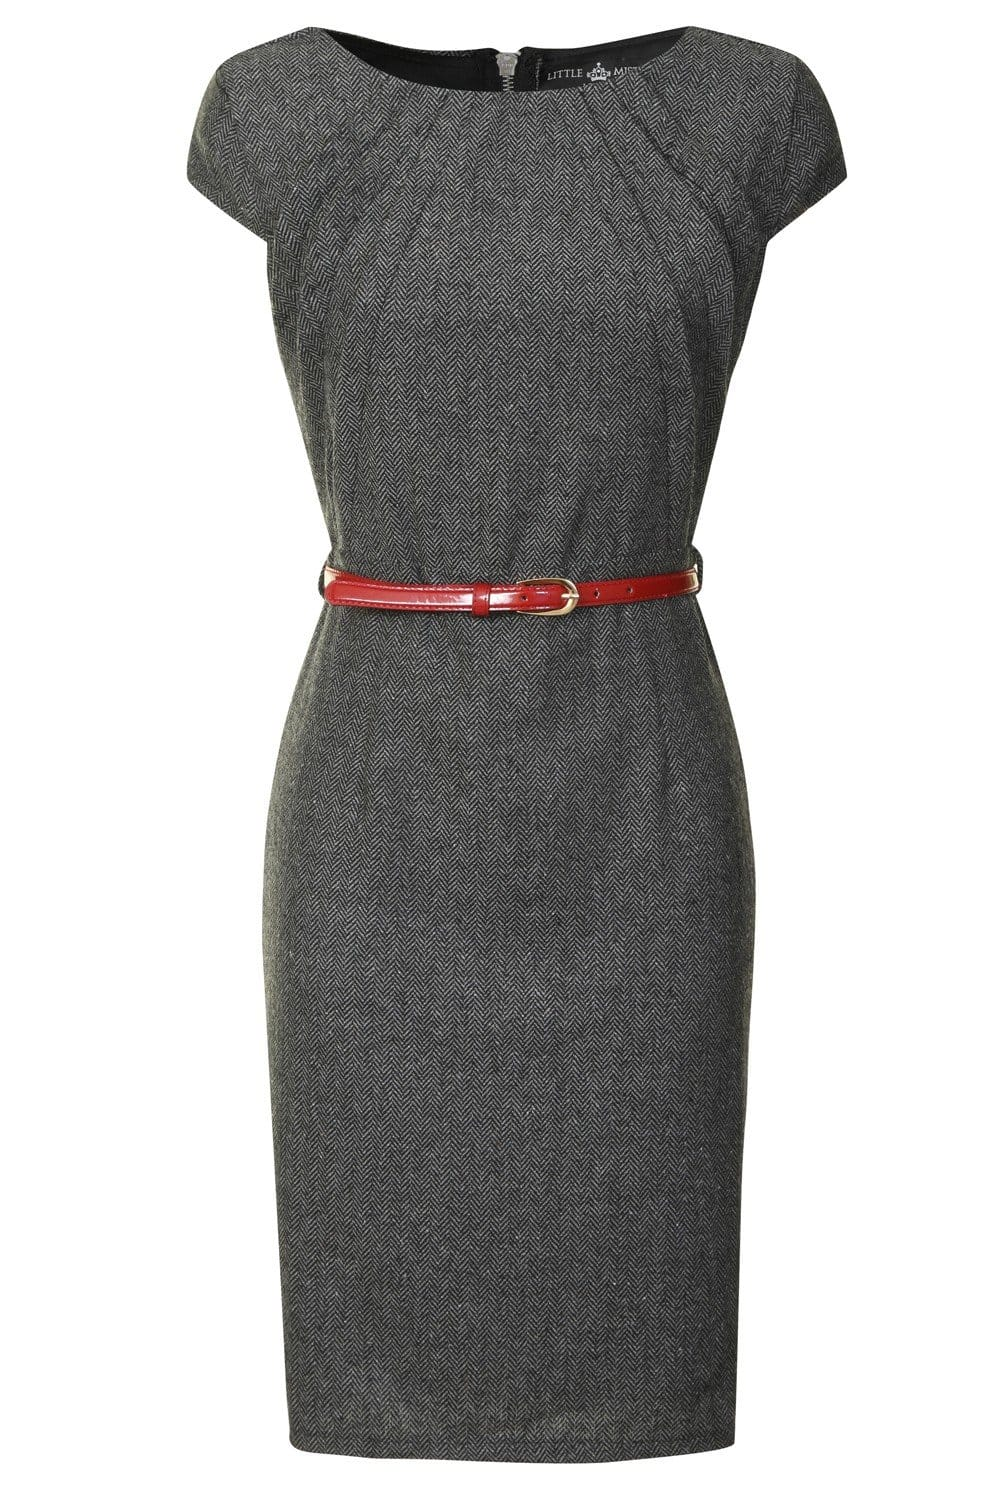 Little Mistress Tweed Fitted Dress with Pencil Skirt